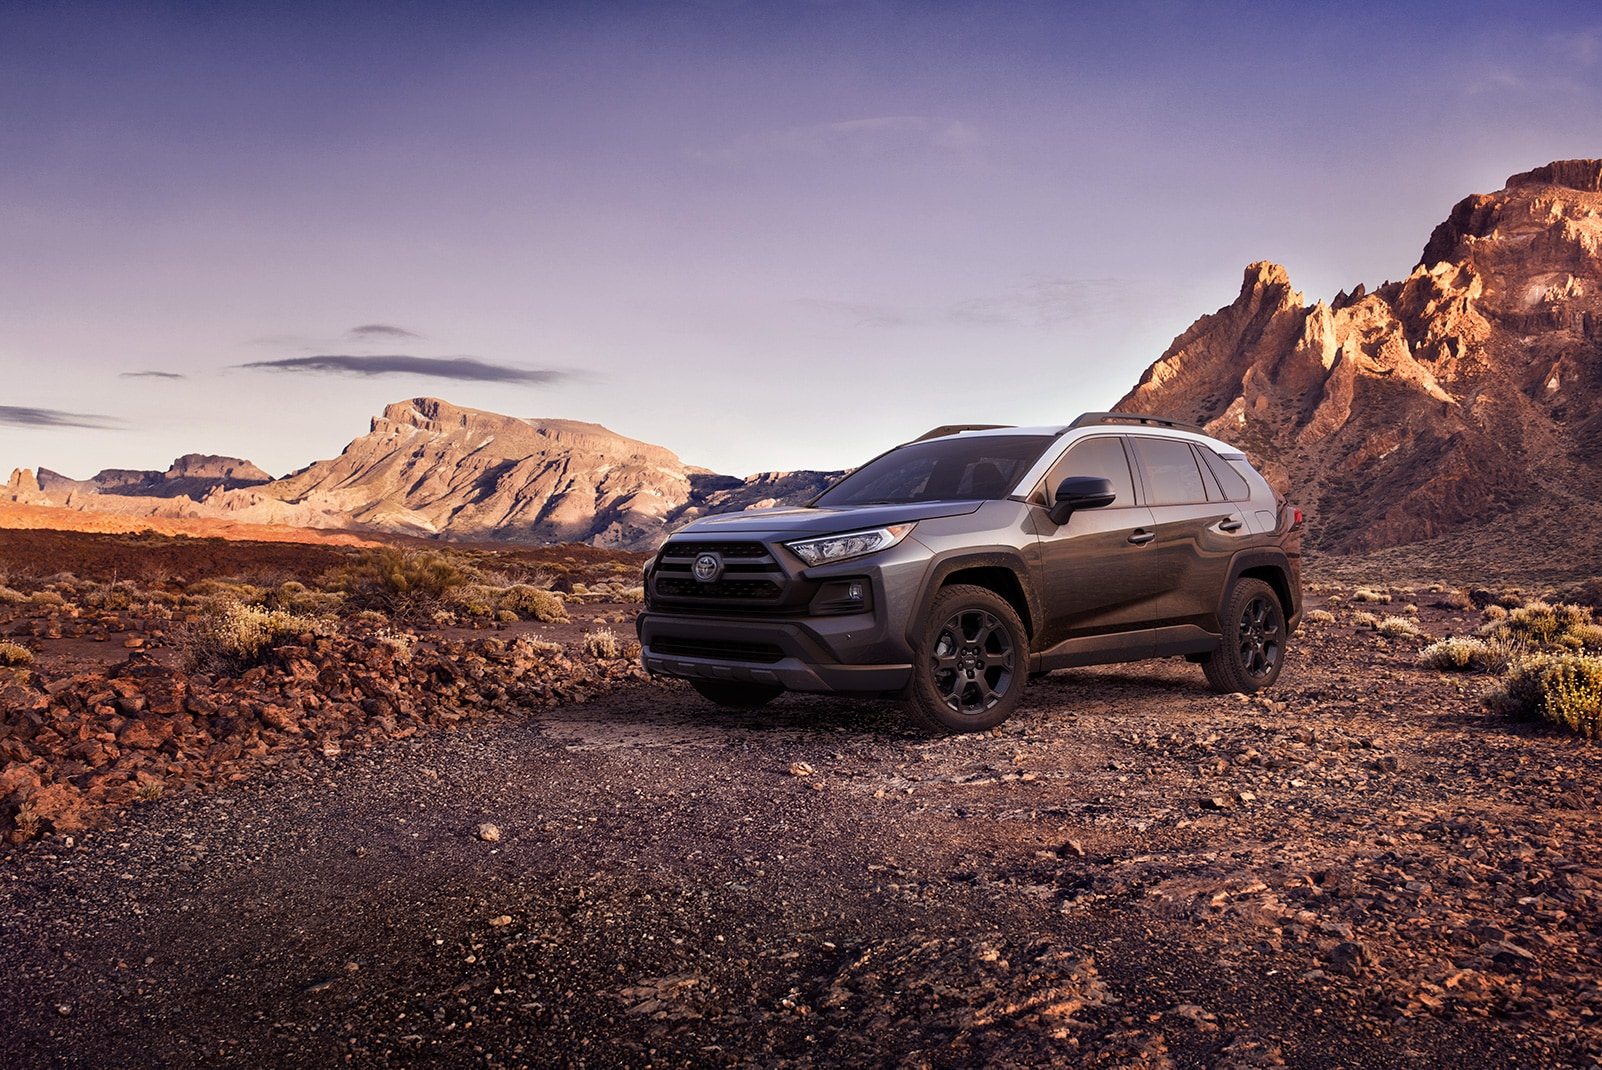 Performance features of the 2020 Toyota RAV4 at Johnstons Toyota | Grey 2020 RAV4 parked on top of a mountain